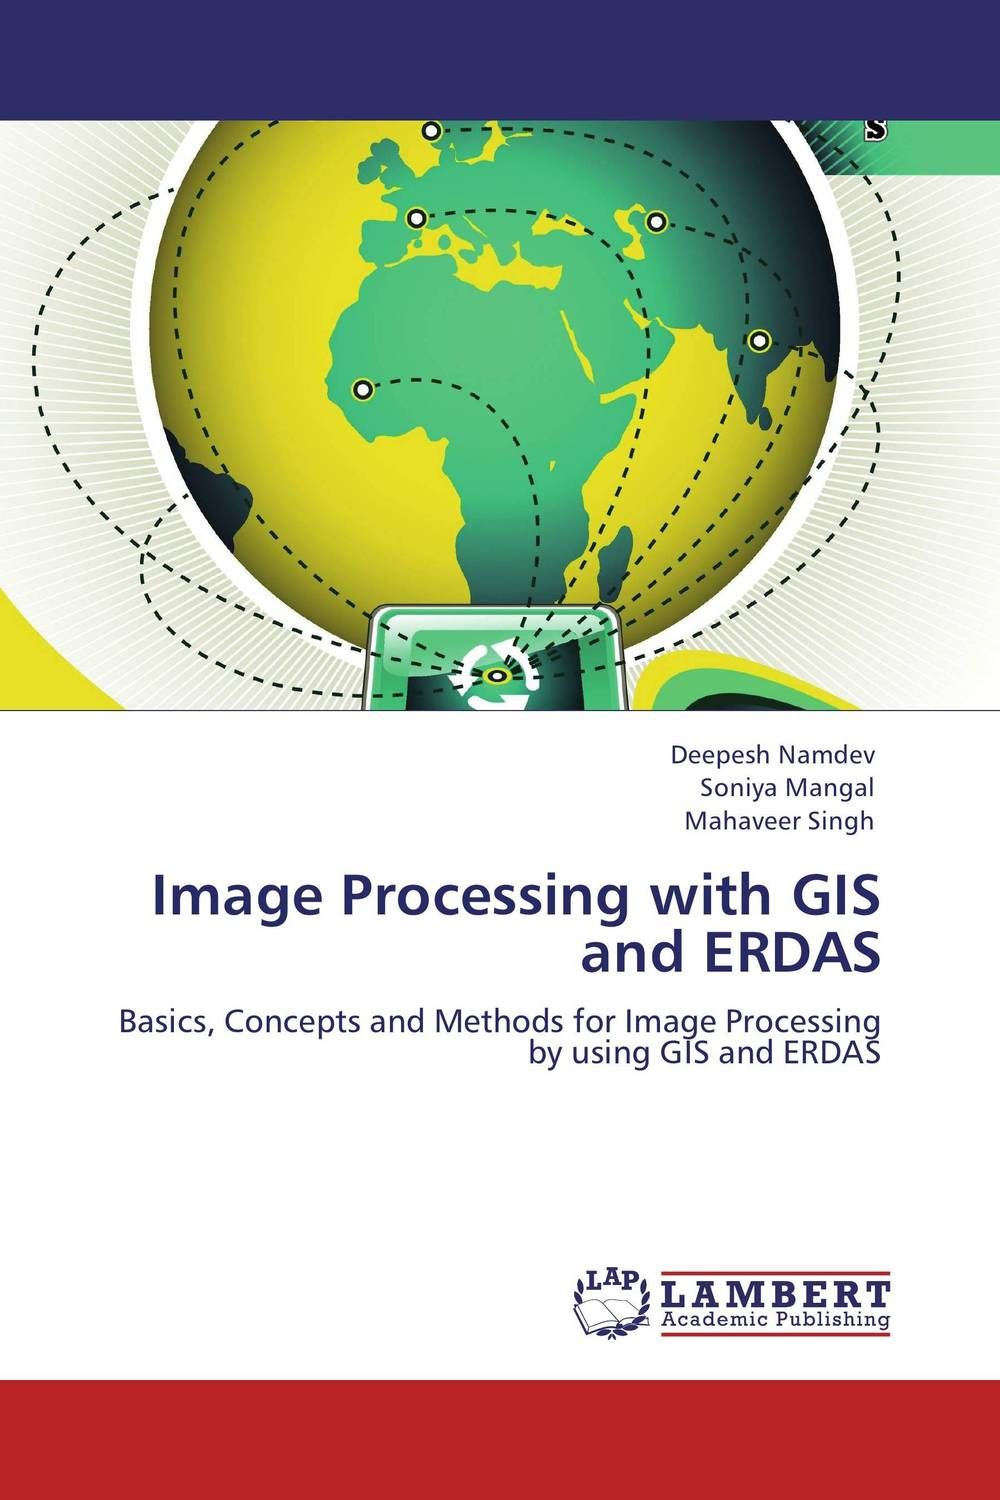 Image Processing with GIS and ERDAS